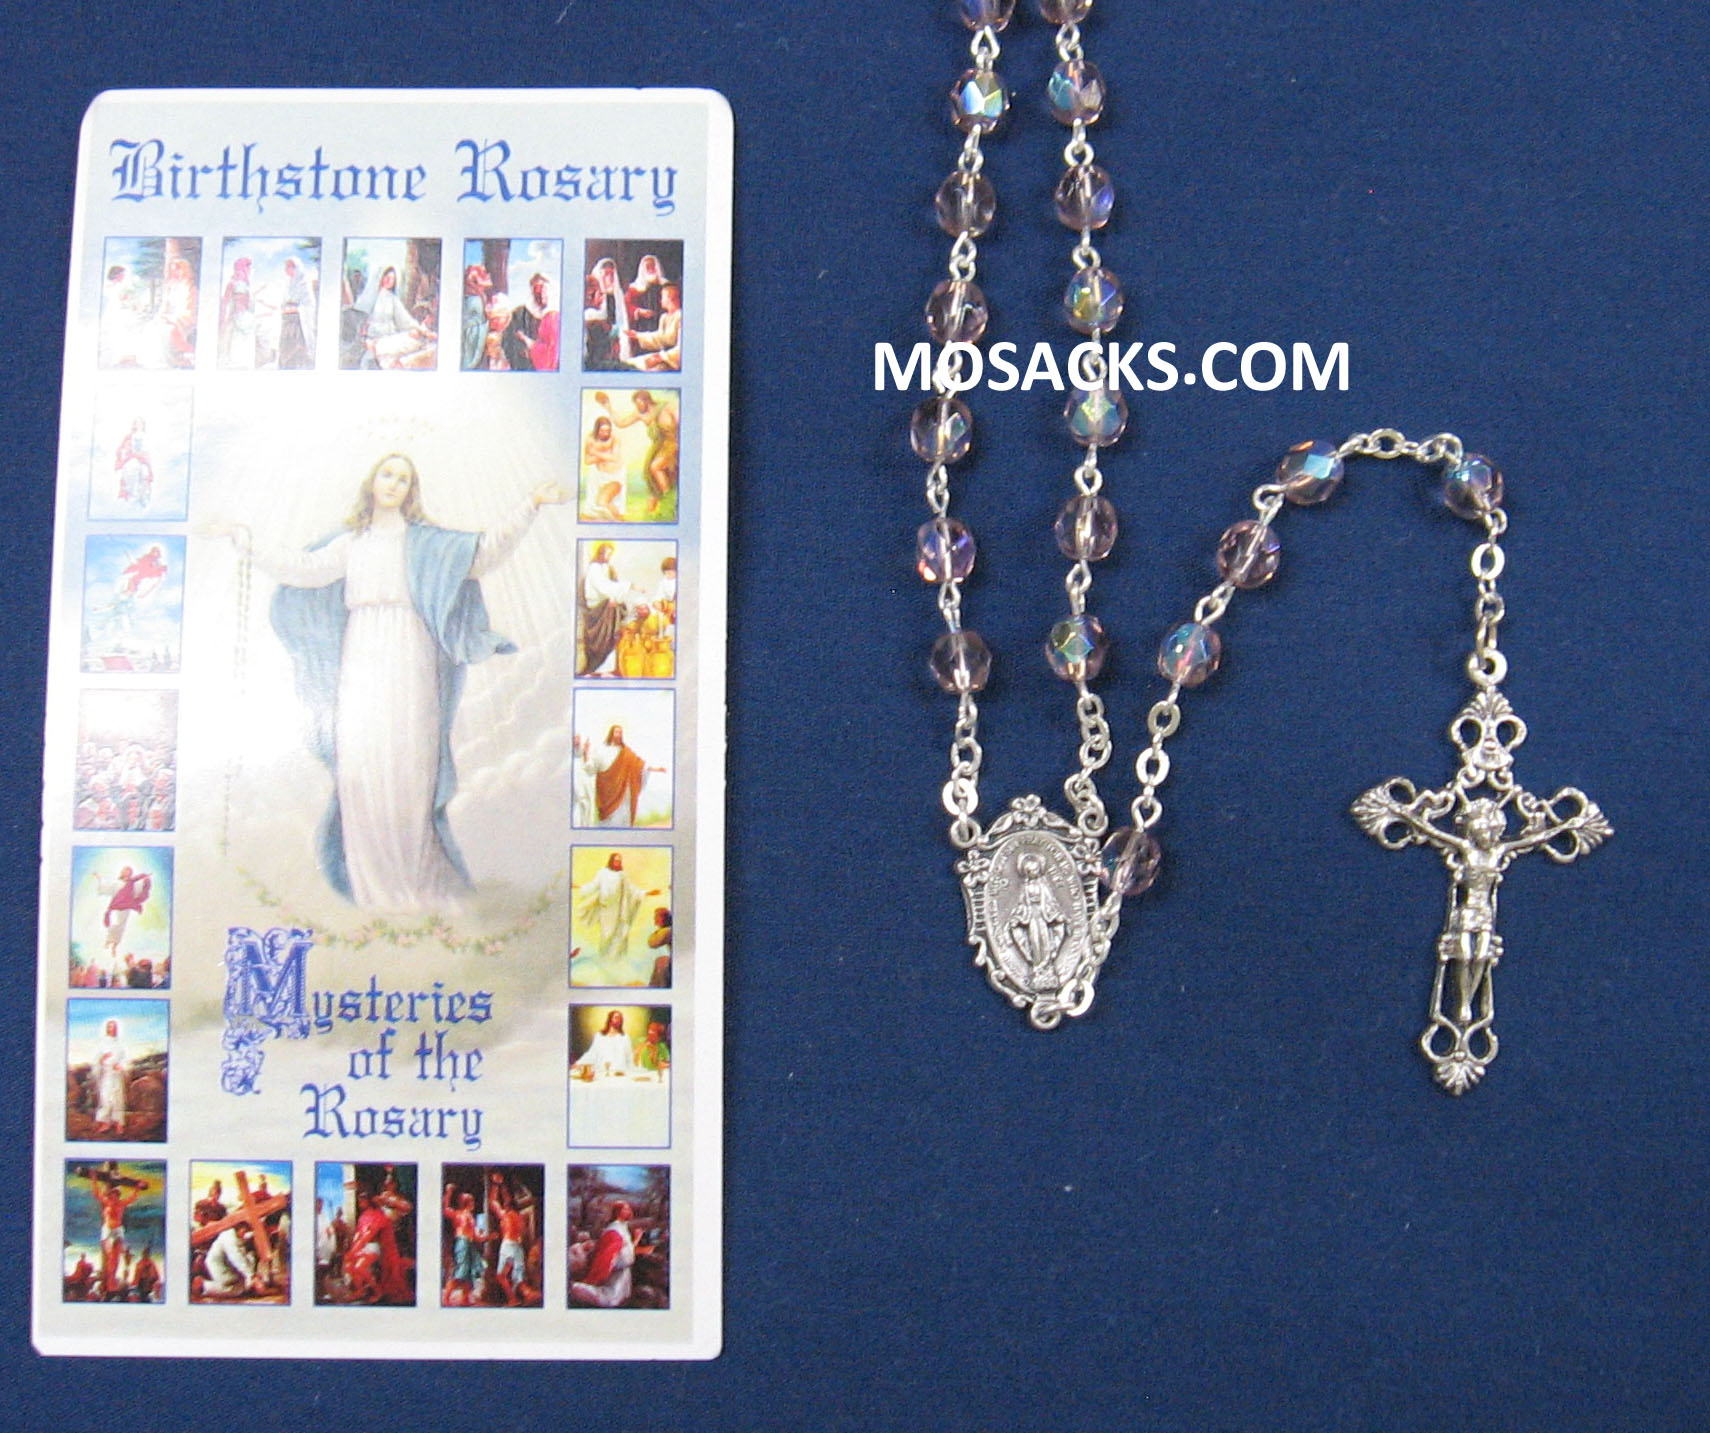 June Light Amethyst Aurora Borealis Birthstone Rosary 64-307/LA/C1